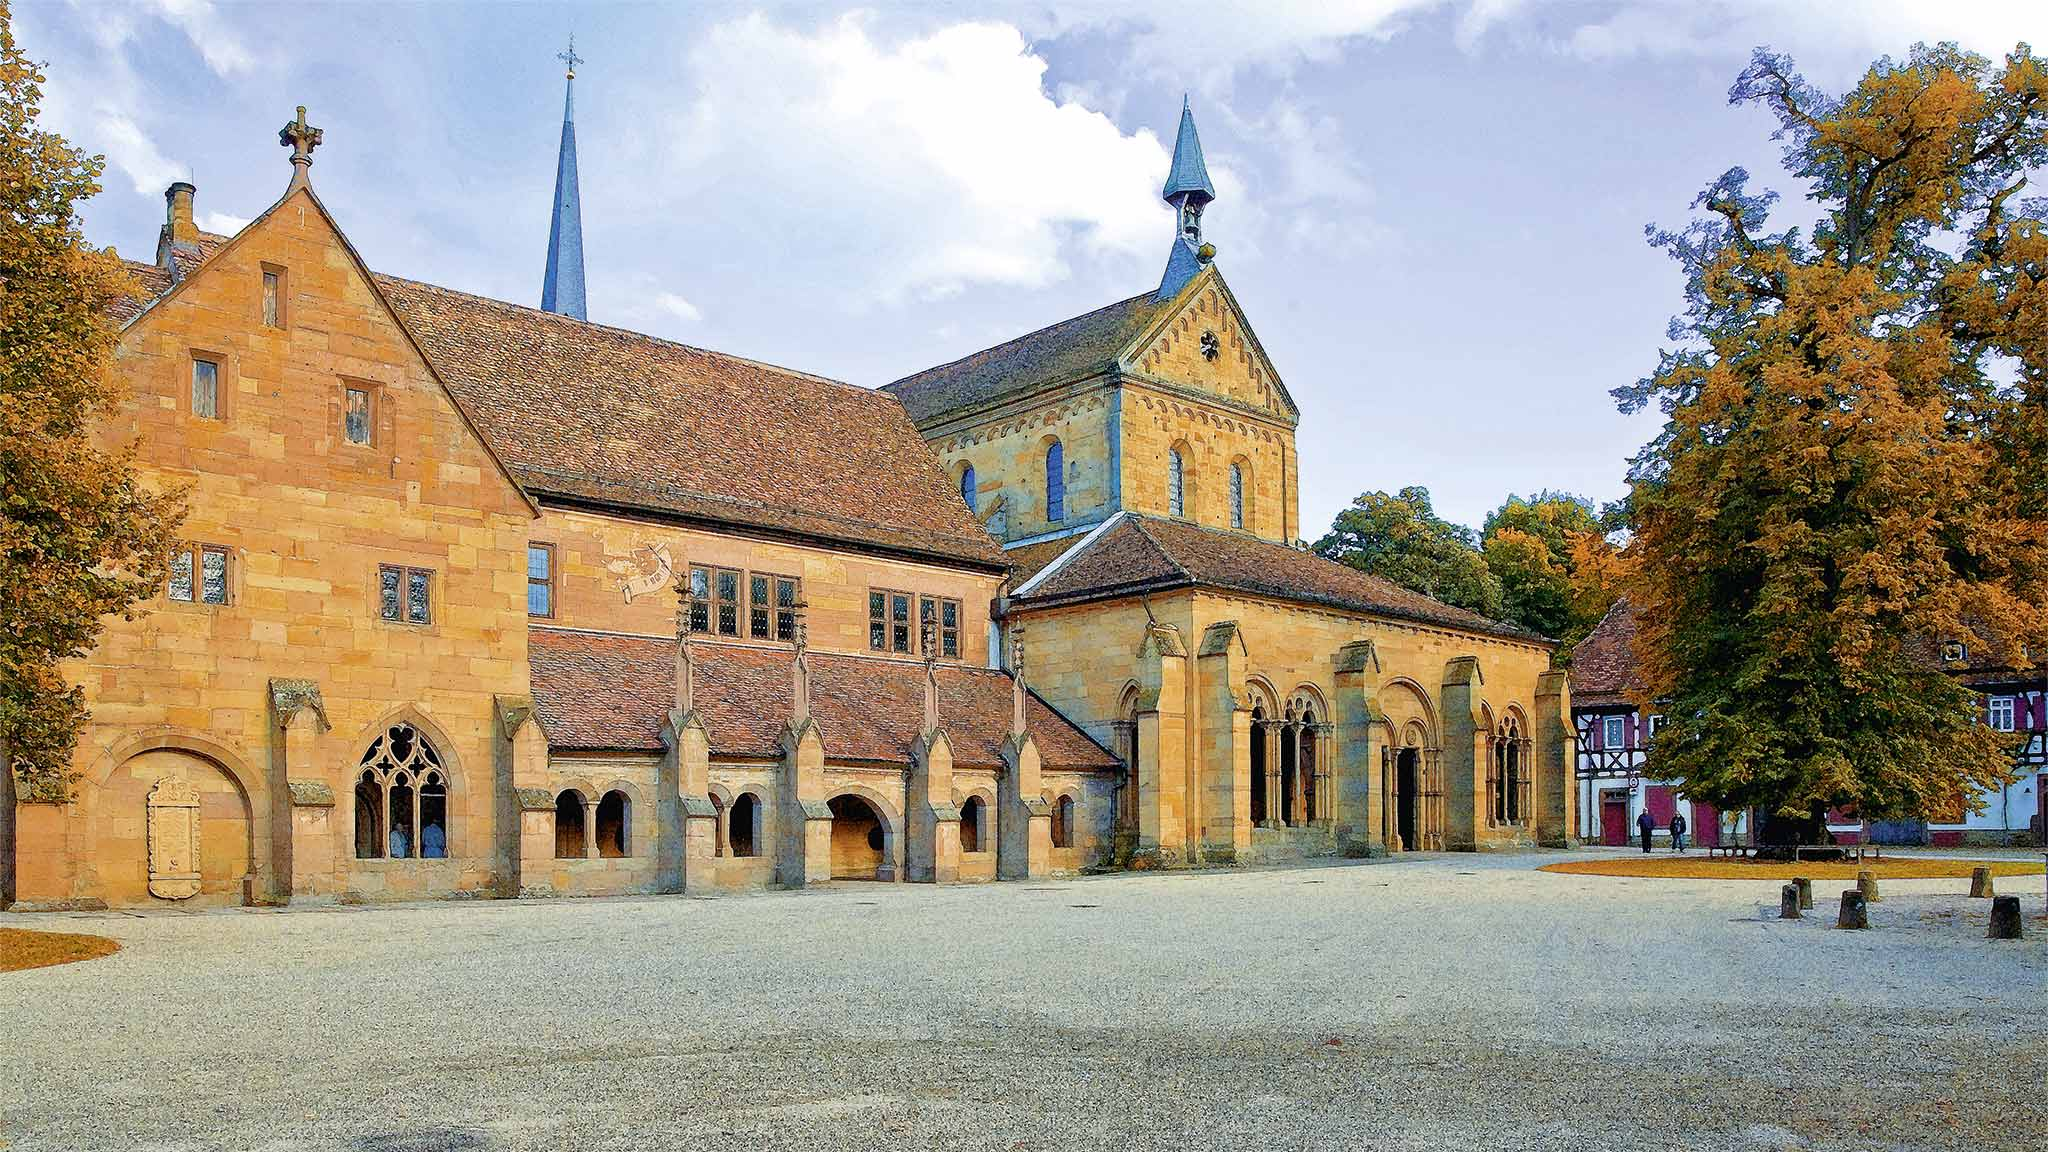 Maulbronn Monastery Edition - A Series by Josef-Stefan Kindler and Andreas Otto Grimminger, K&K Verlagsanstalt, Germany